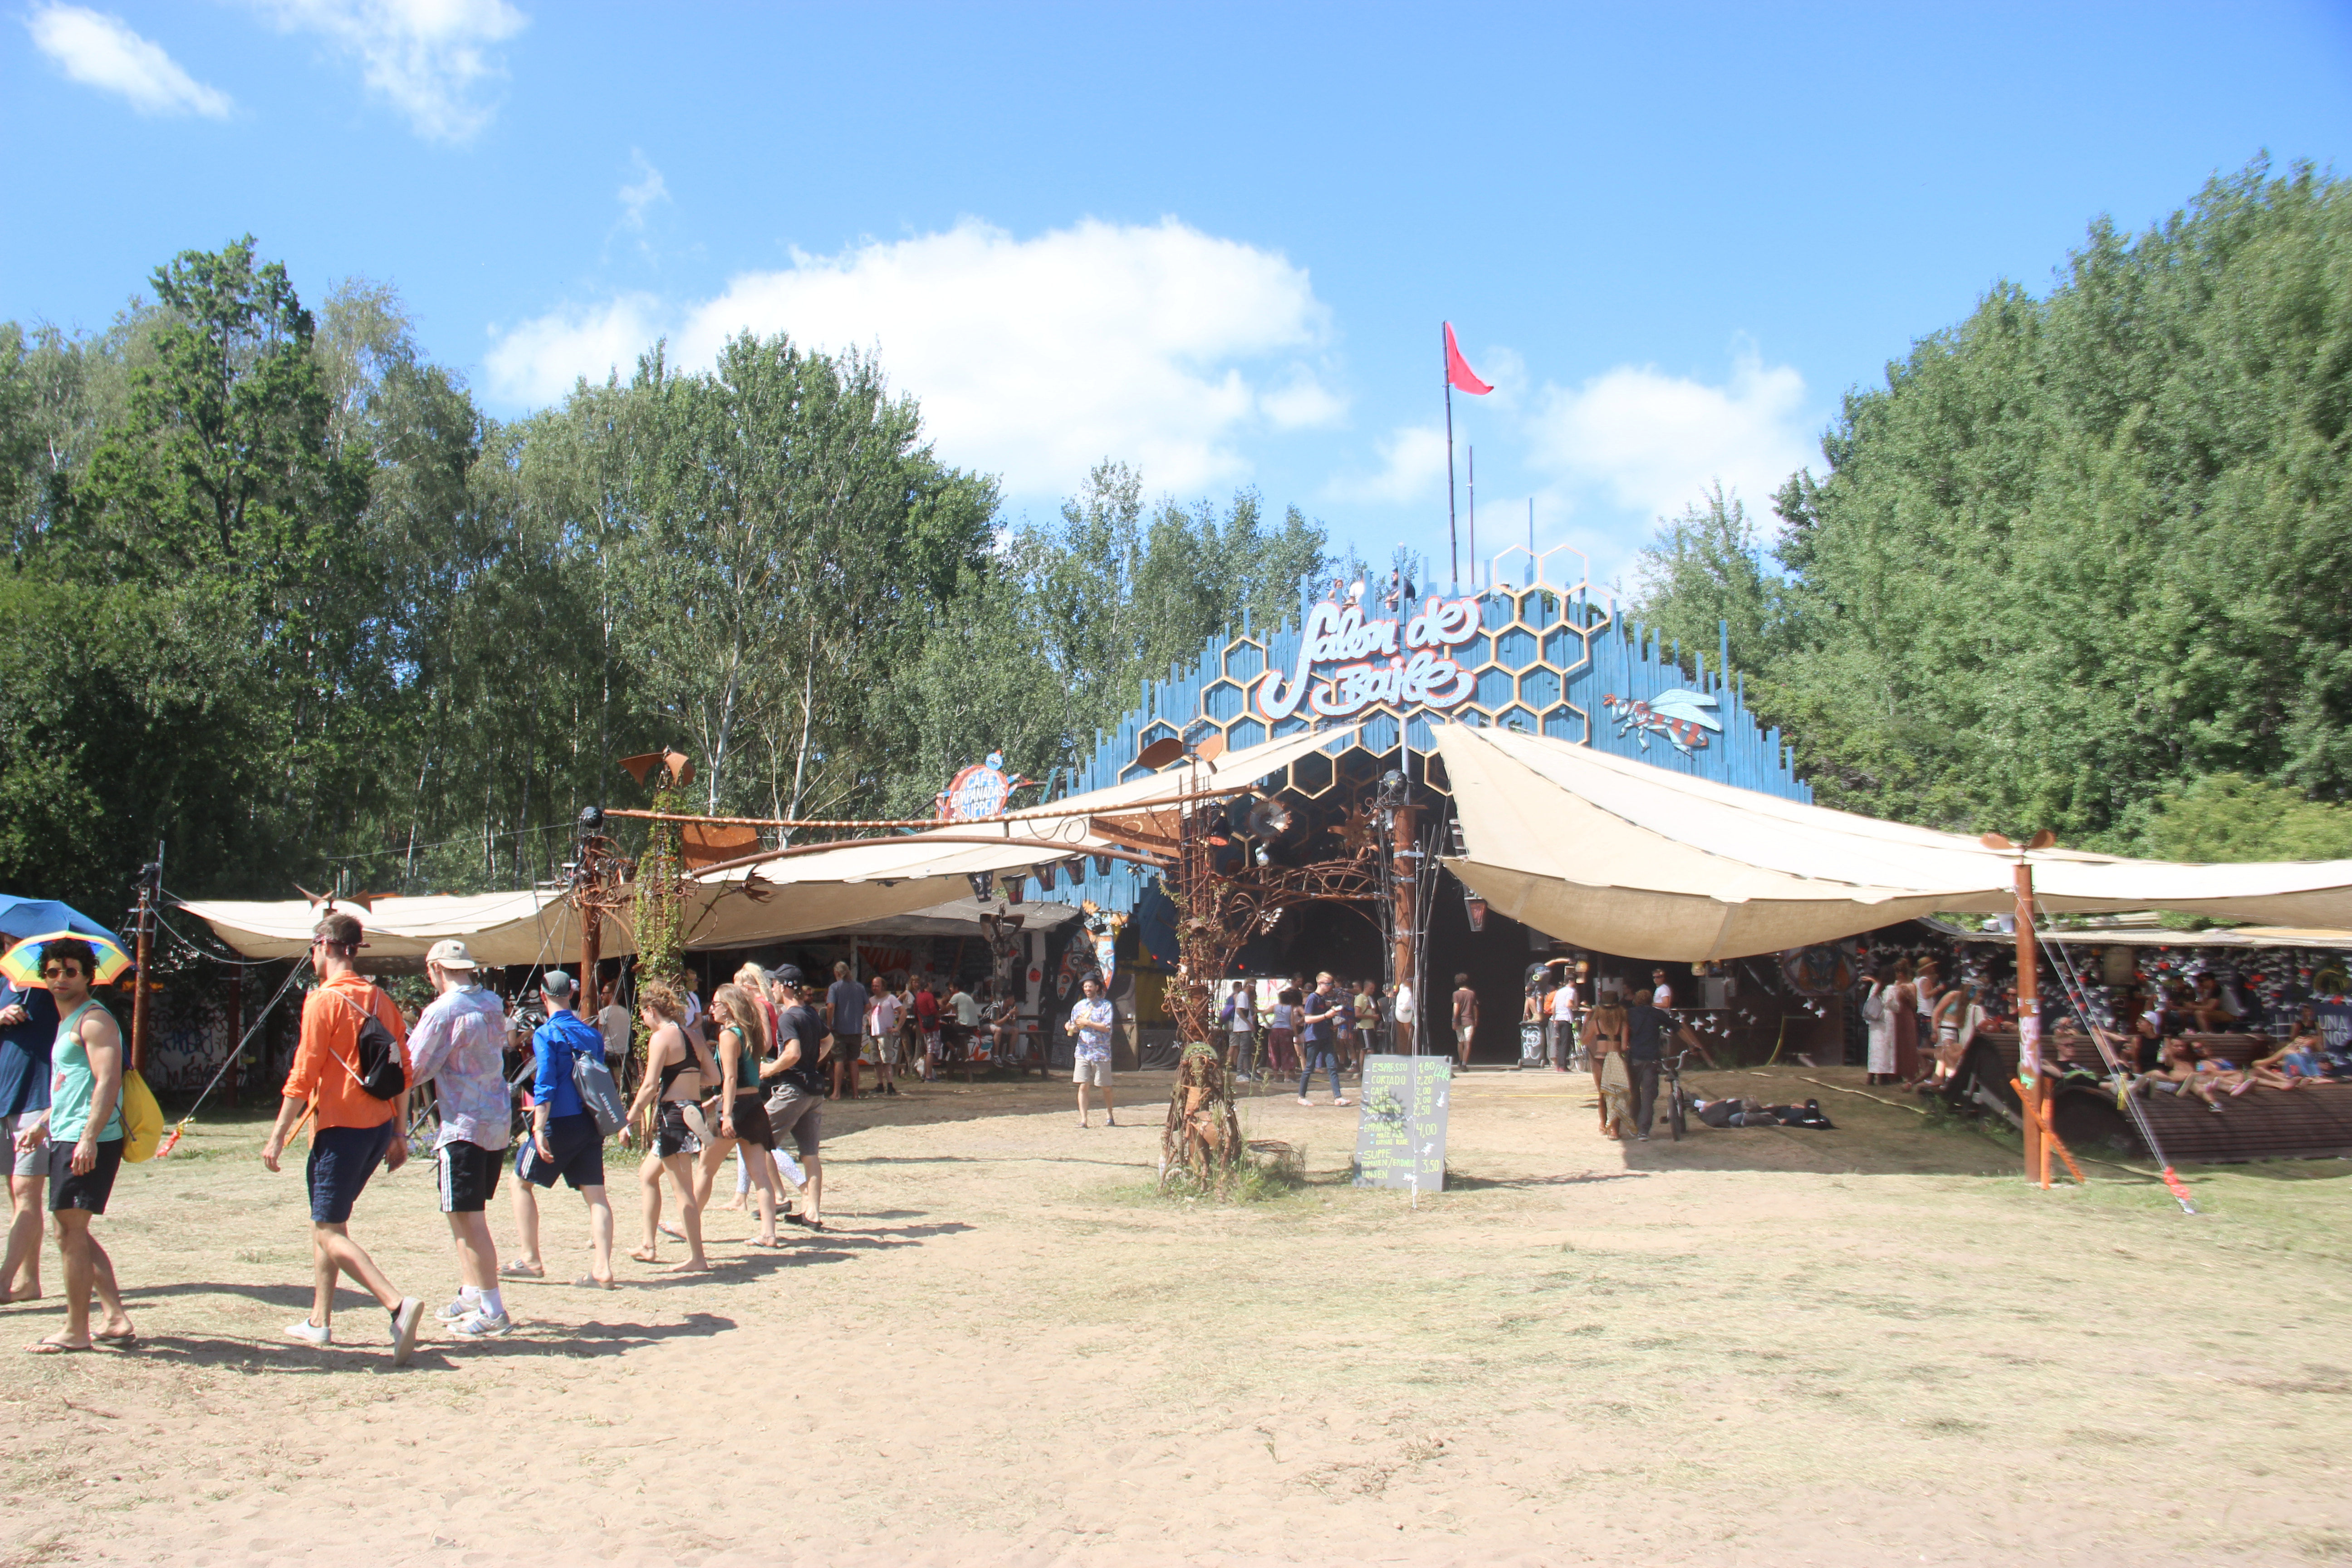 Fusion festival see nackt